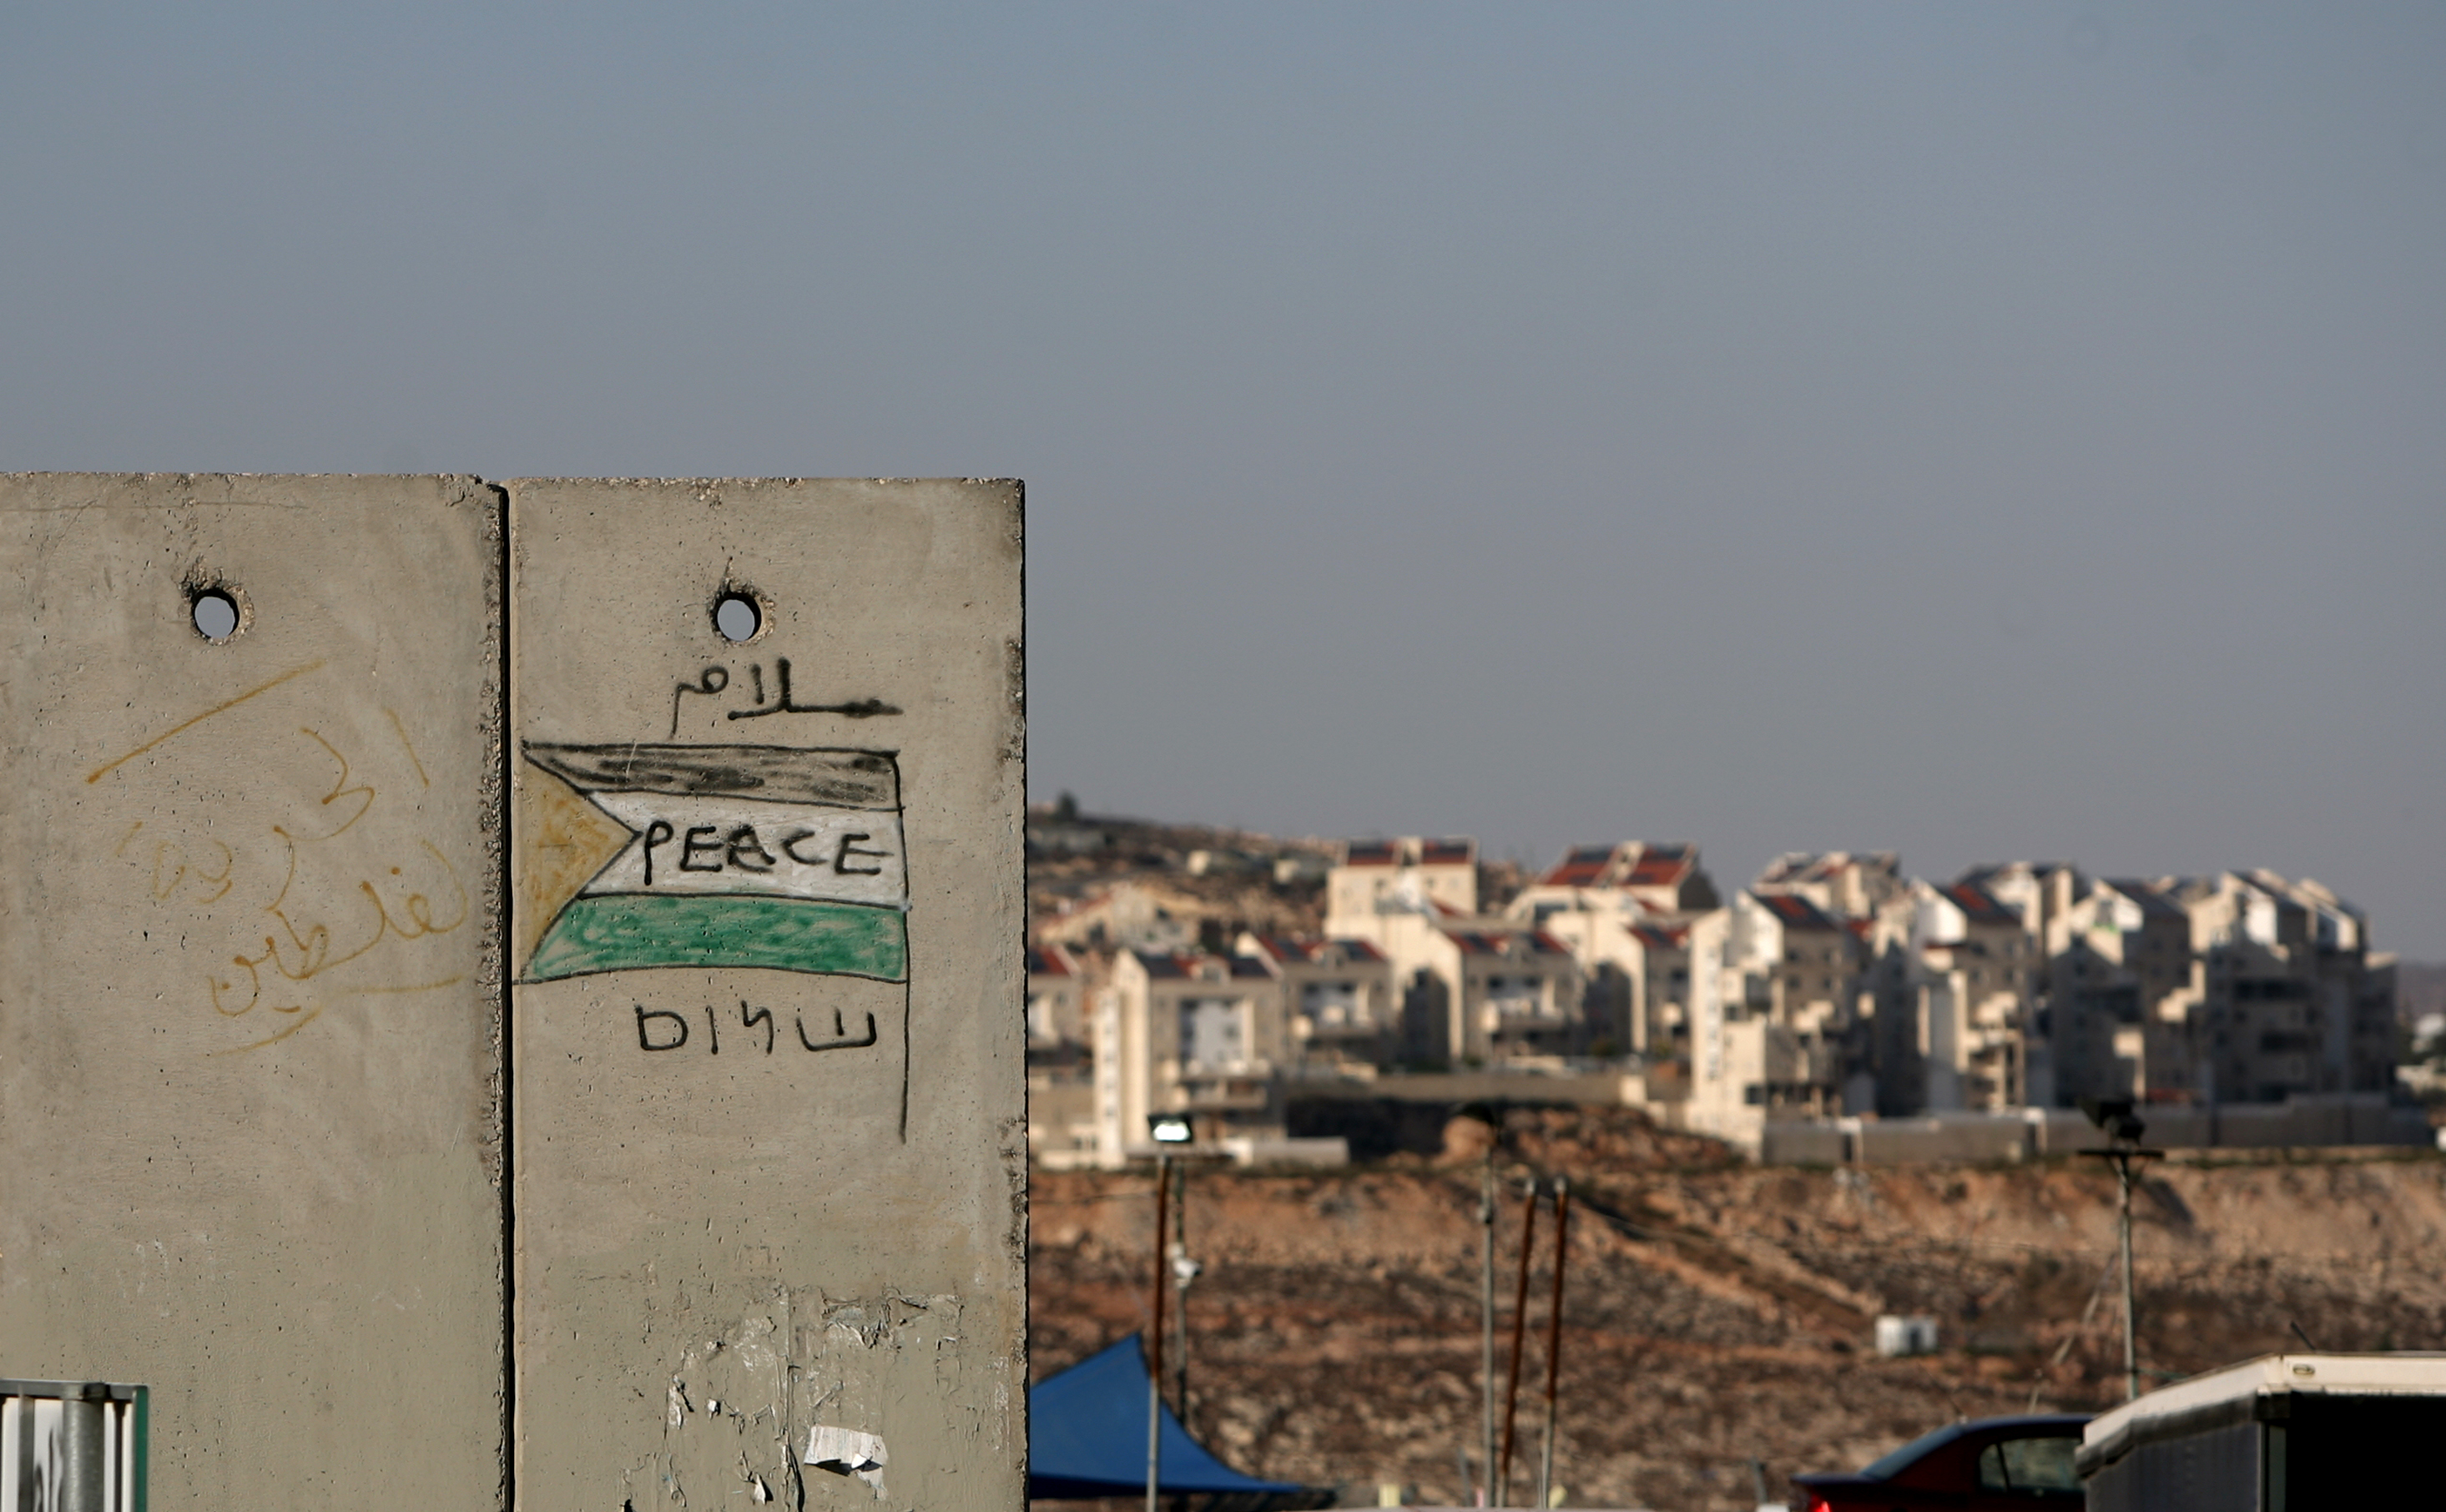 Illustrative image: The Jewish settlement of Kochav Ya'akov is seen behind a section of Israel's separation barrier. Getty Images